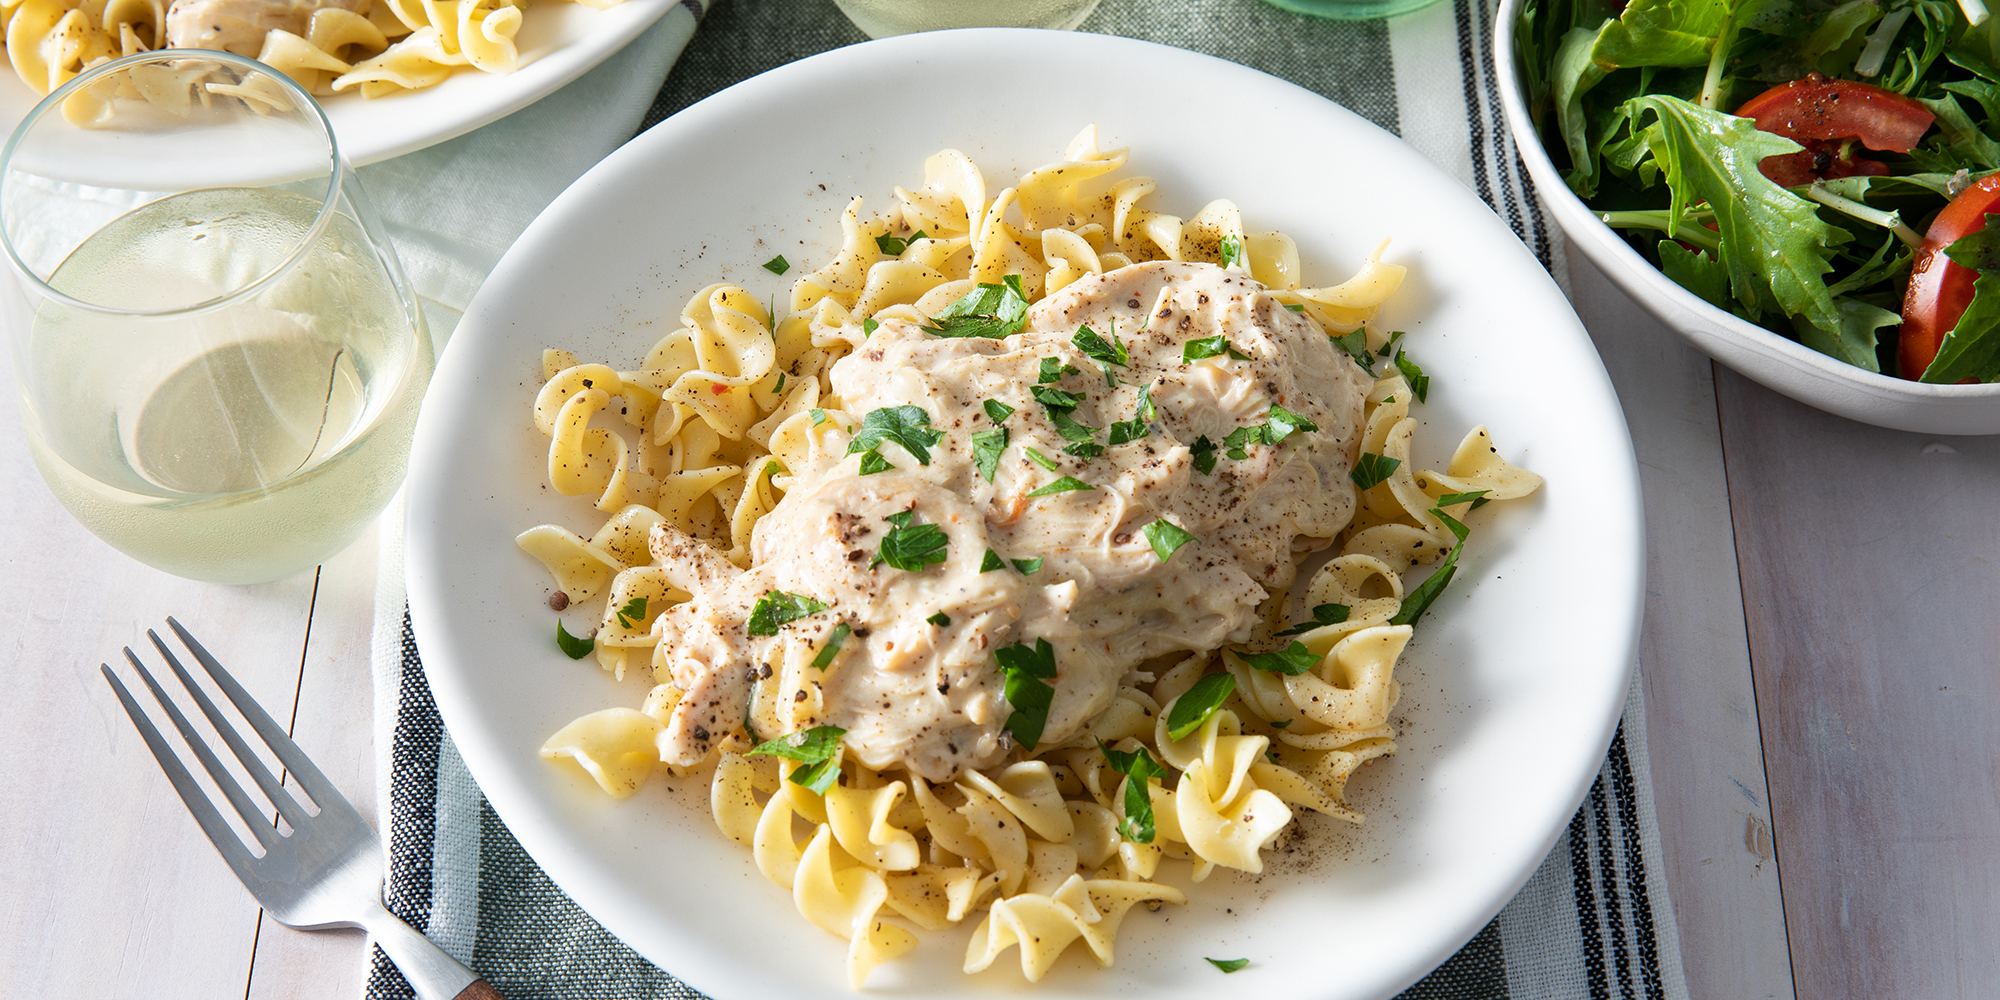 Looking down on a serving of slow-cooker chicken tetrazzini served over egg noodles and garnished with fresh chopped parsley. Served with a green salad and glass of white wine.